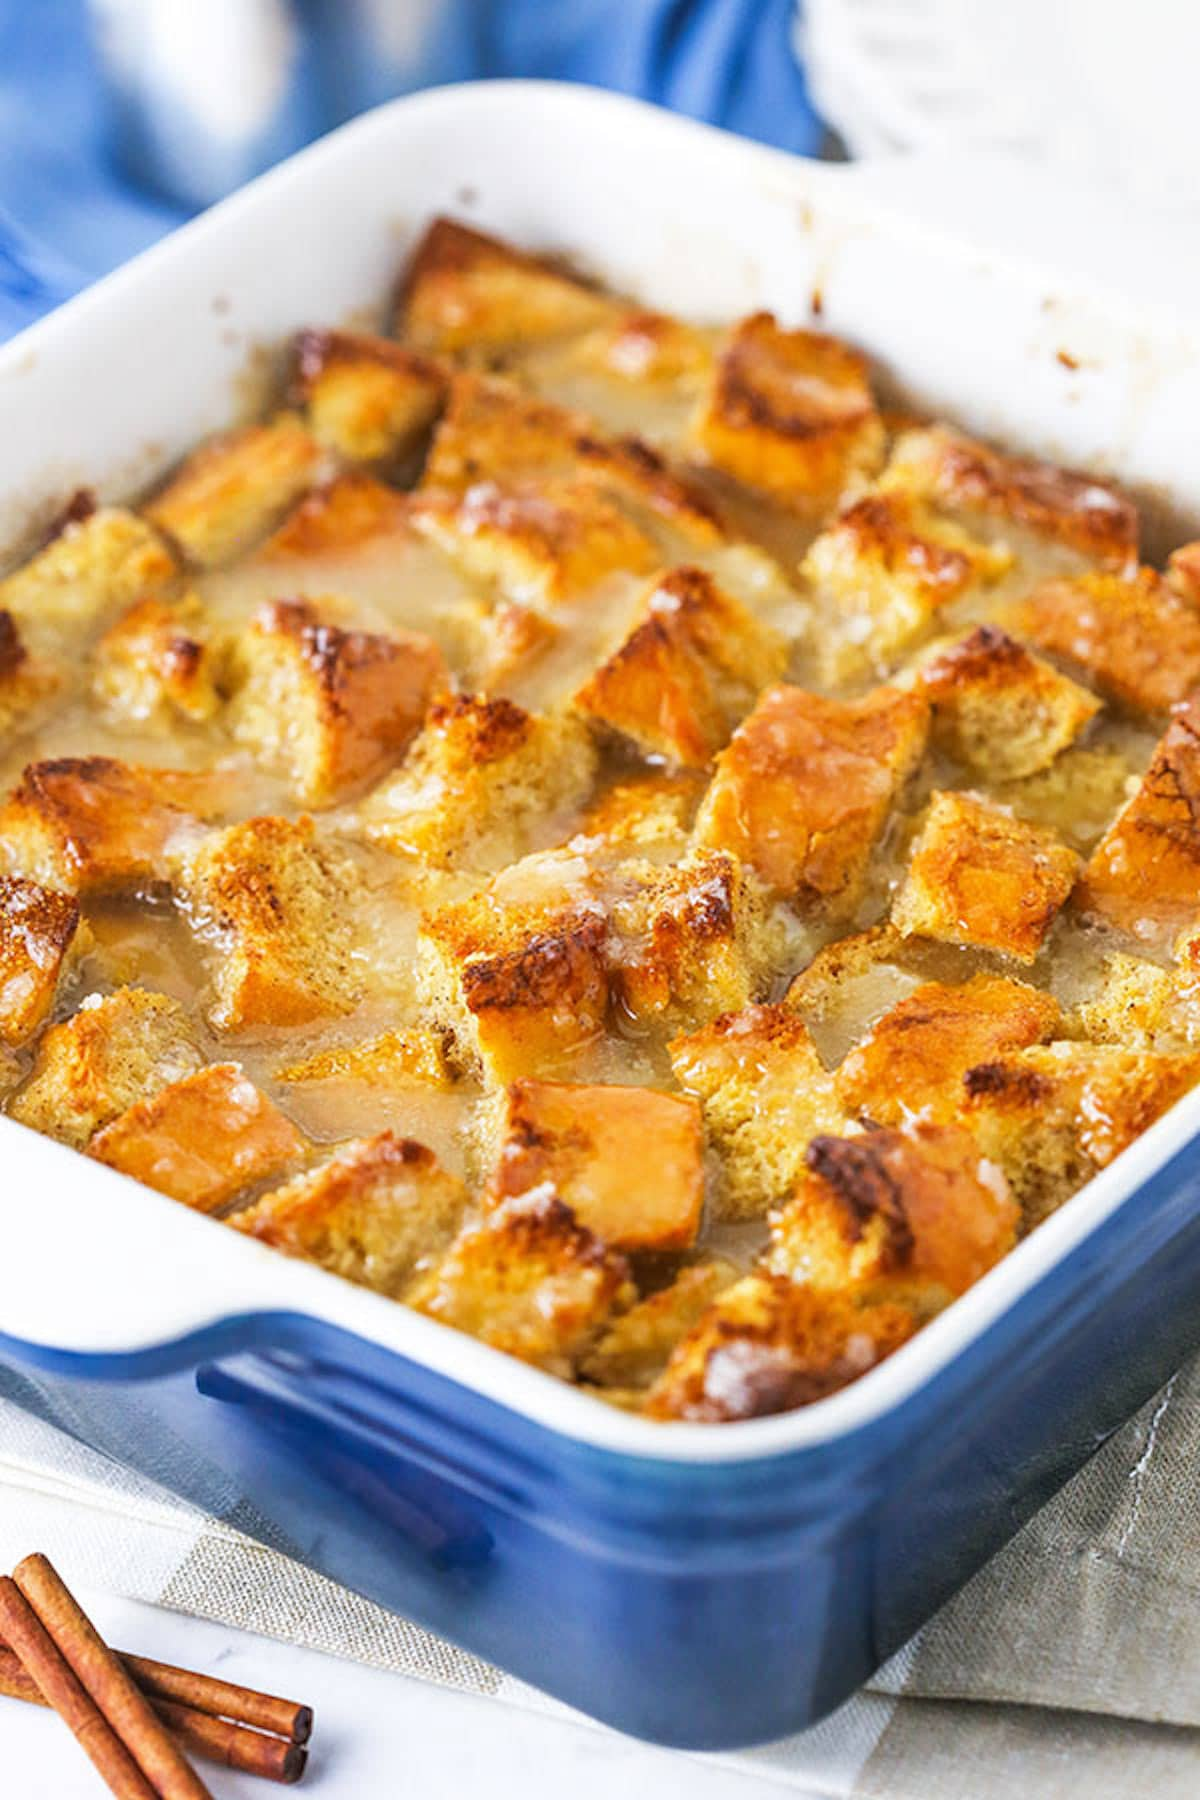 Freshly Baked Bread Pudding in a Pan Next to Two Cinnamon Sticks